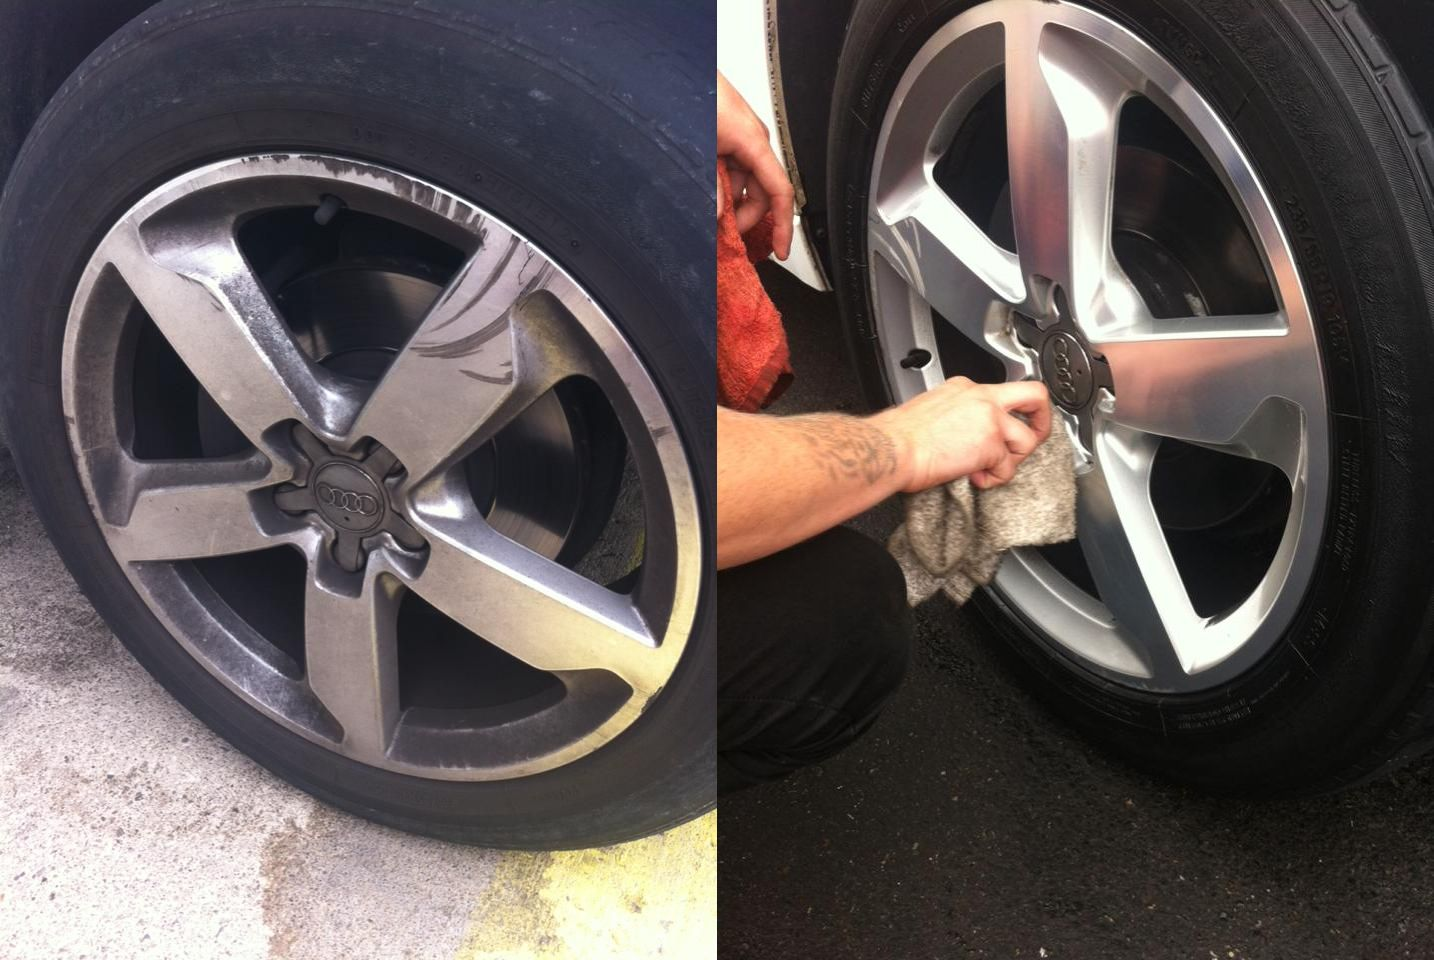 We wipe off excess tire shine, reducing splatters. Your rims are wiped dry for that crisp, clean finish.